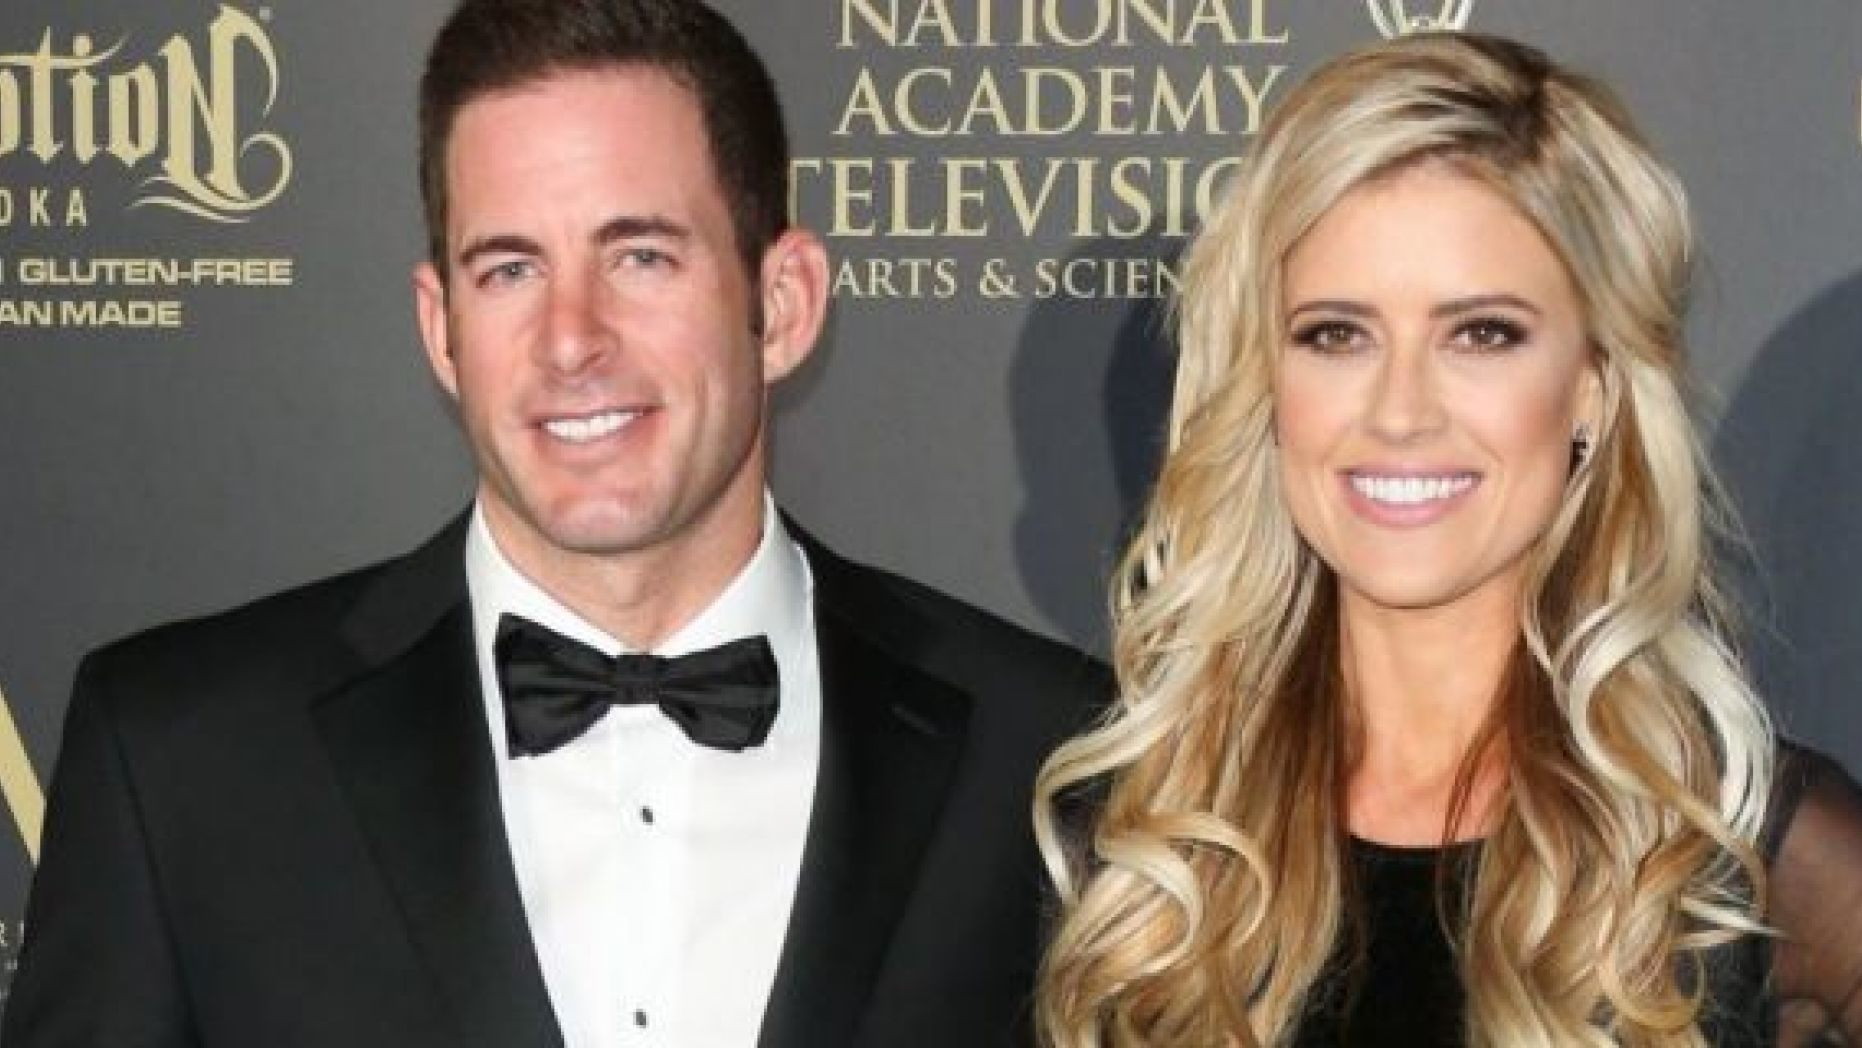 tarek-el-moussa-confesses-it-was-hard-to-shoot-with-christina-amid-their-divorce-compares-it-to-pulling-teeth